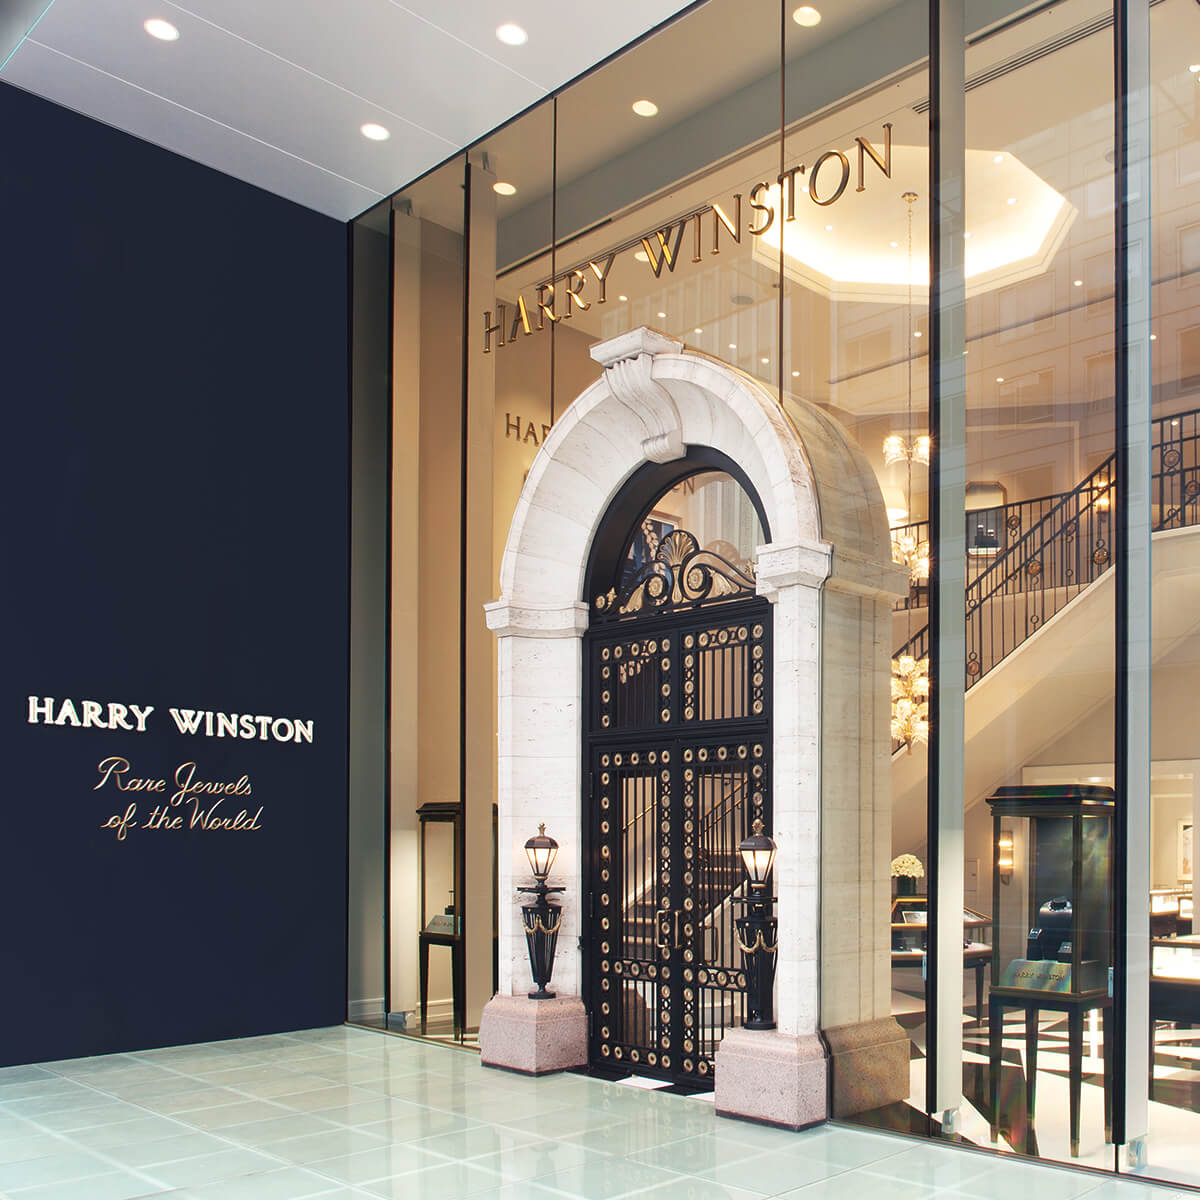 Entrance of the Harry Winston Salon in Ginza